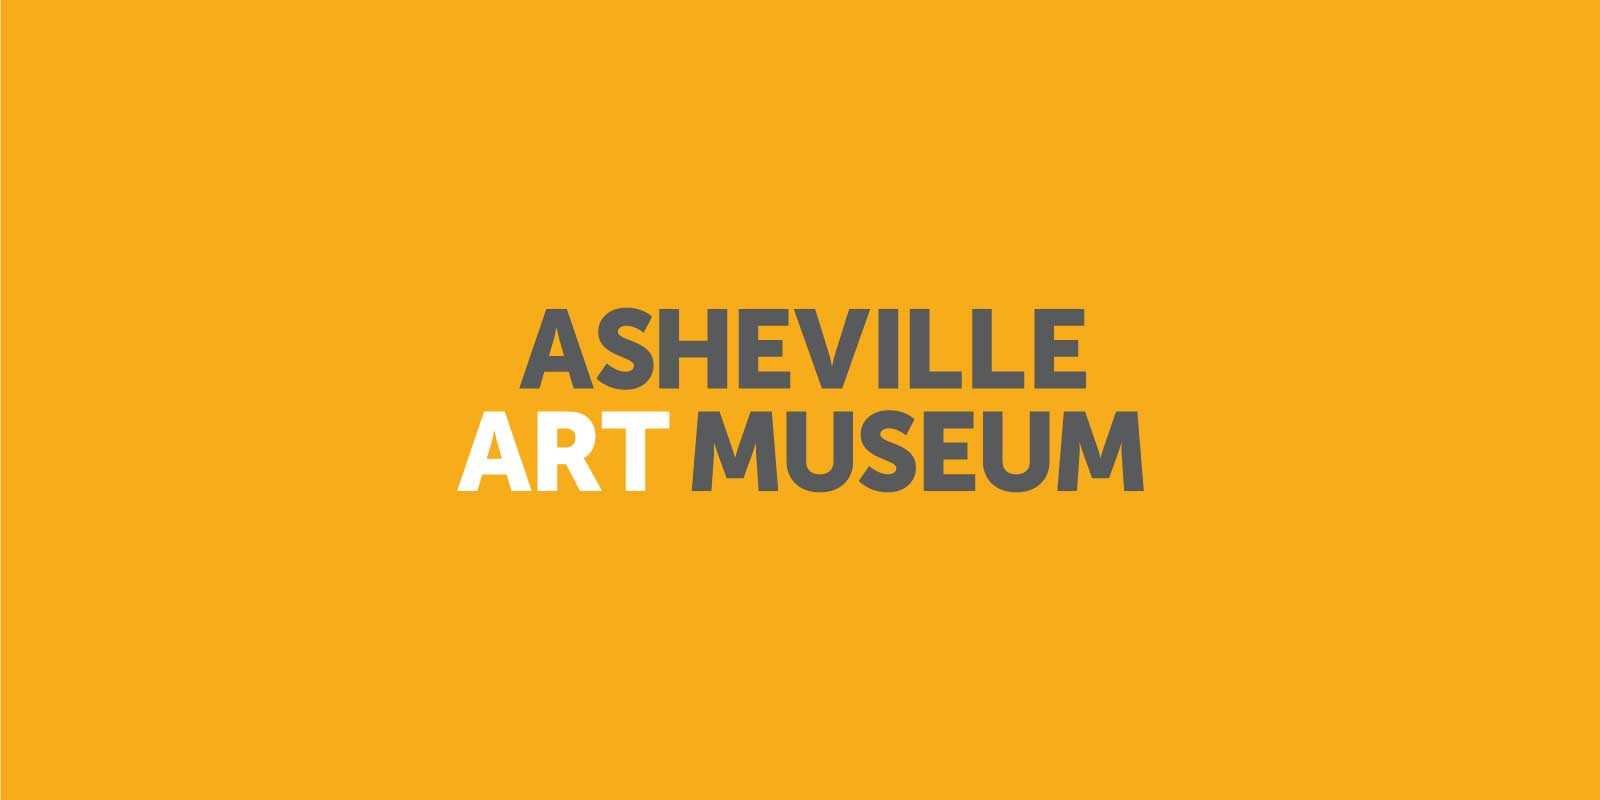 Asheville Art Museum logo in gray and white, centered on a gold background.